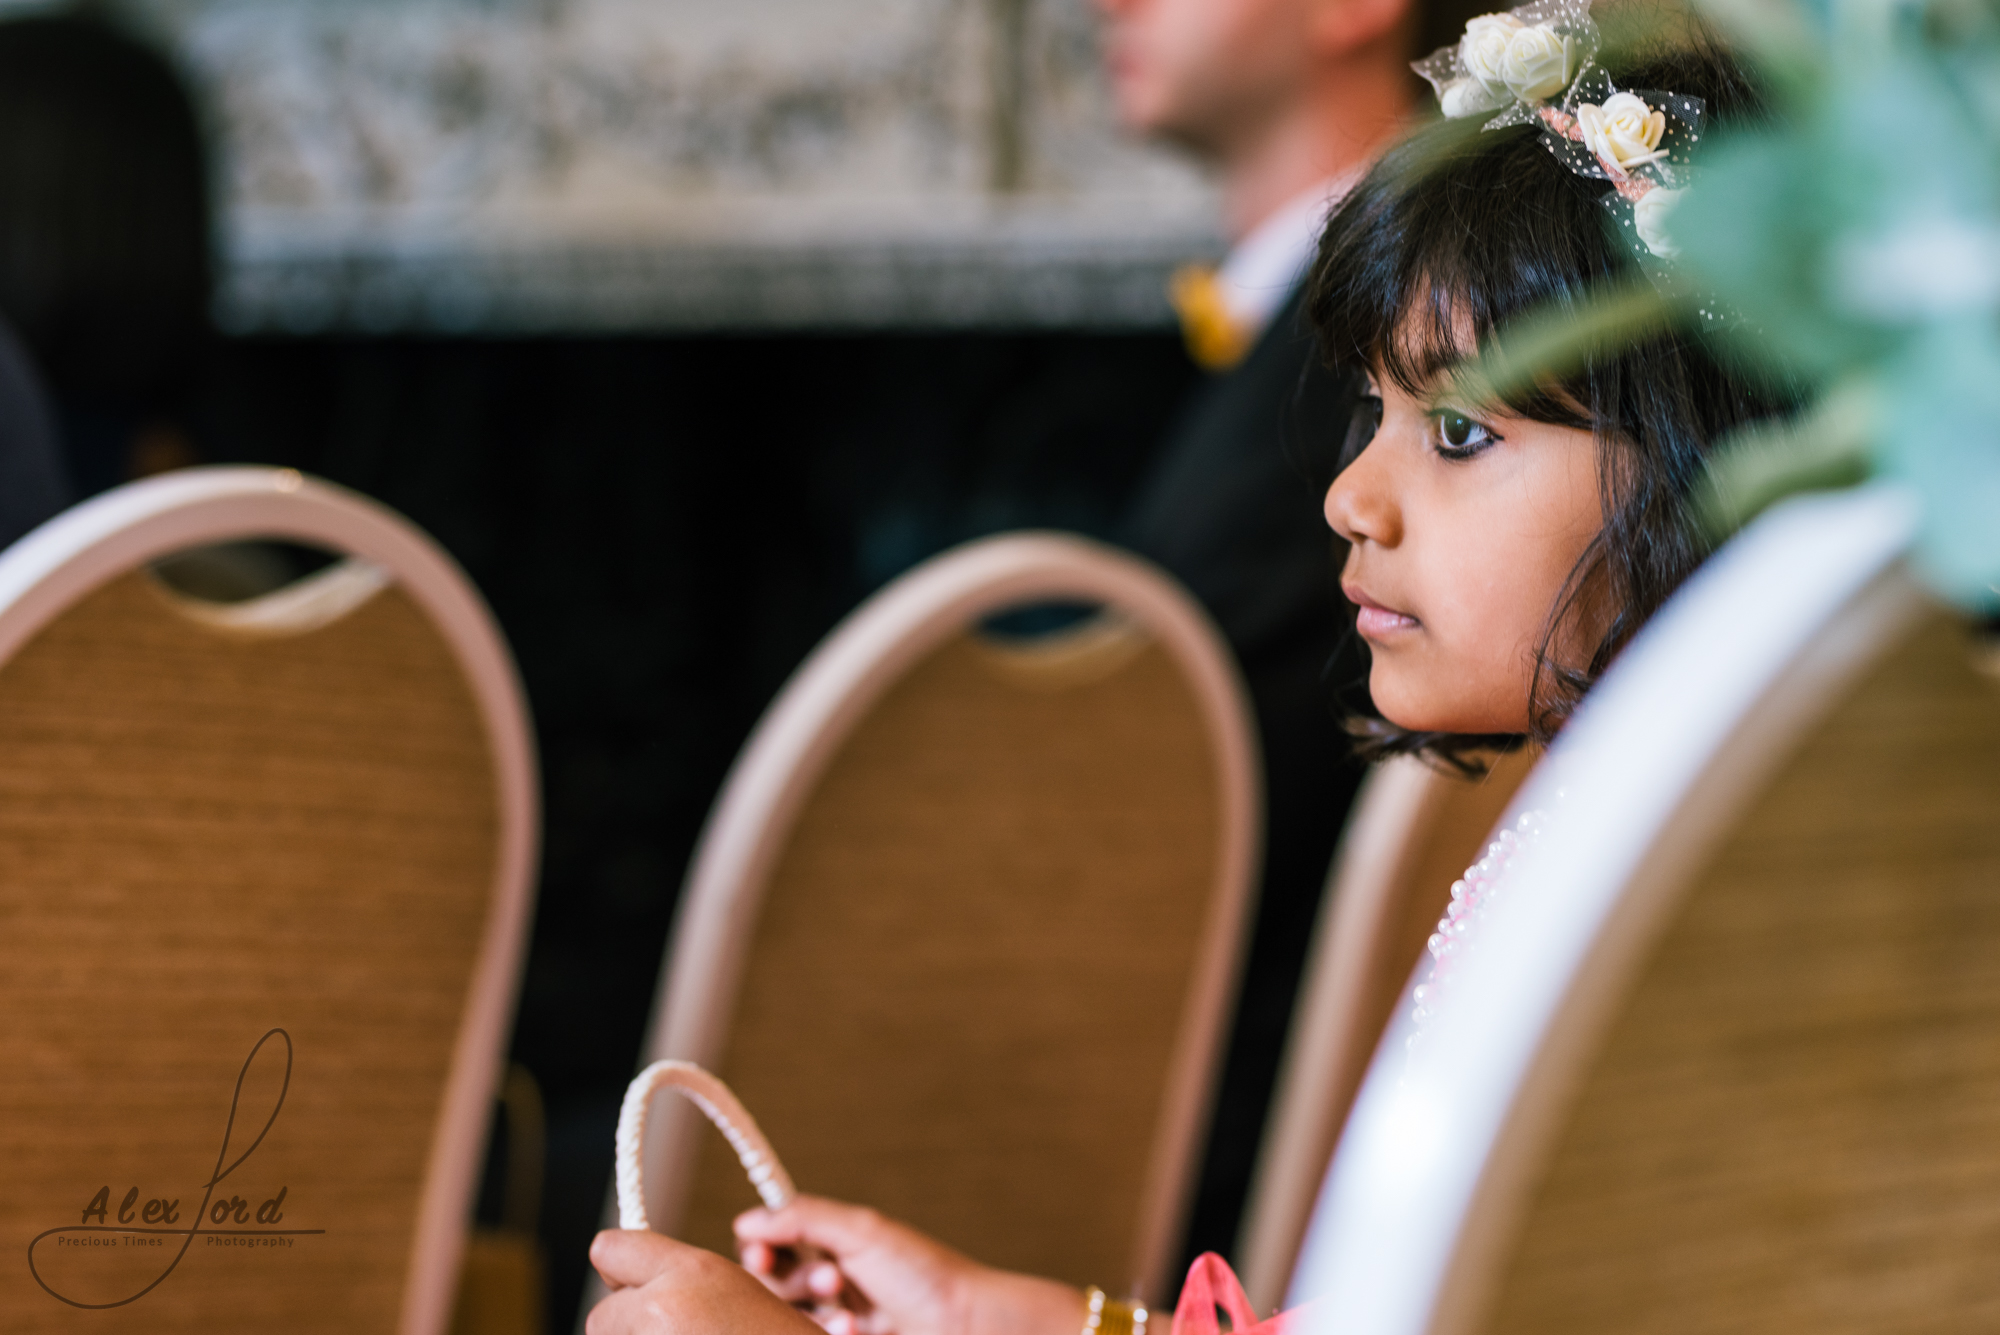 A young wedding guest sits patiently waiting for the end of the ceremony